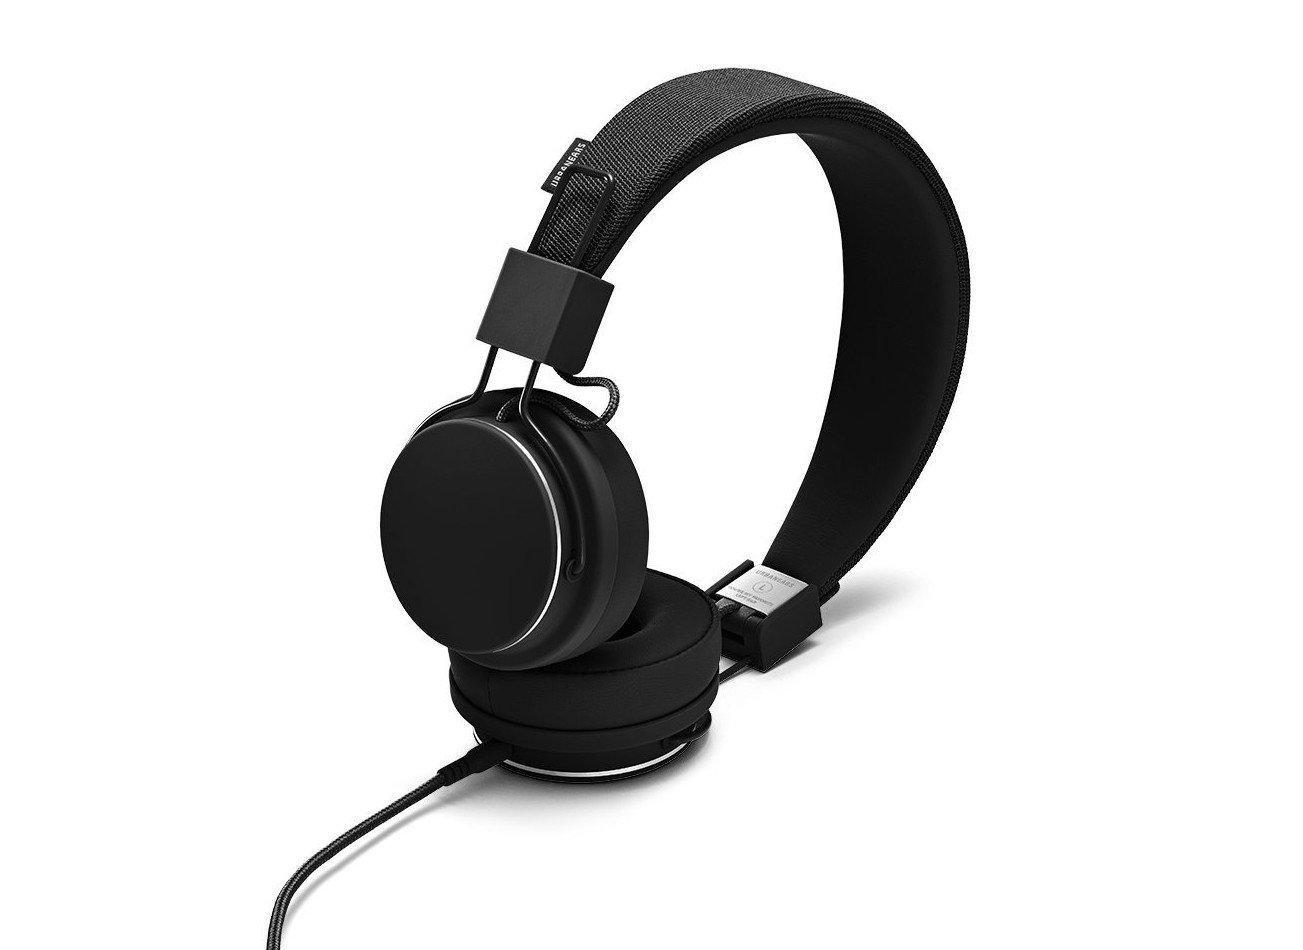 Gift Guides Travel Shop Travel Tech headphones earphone electronics technology audio equipment audio electronic device headset product design product